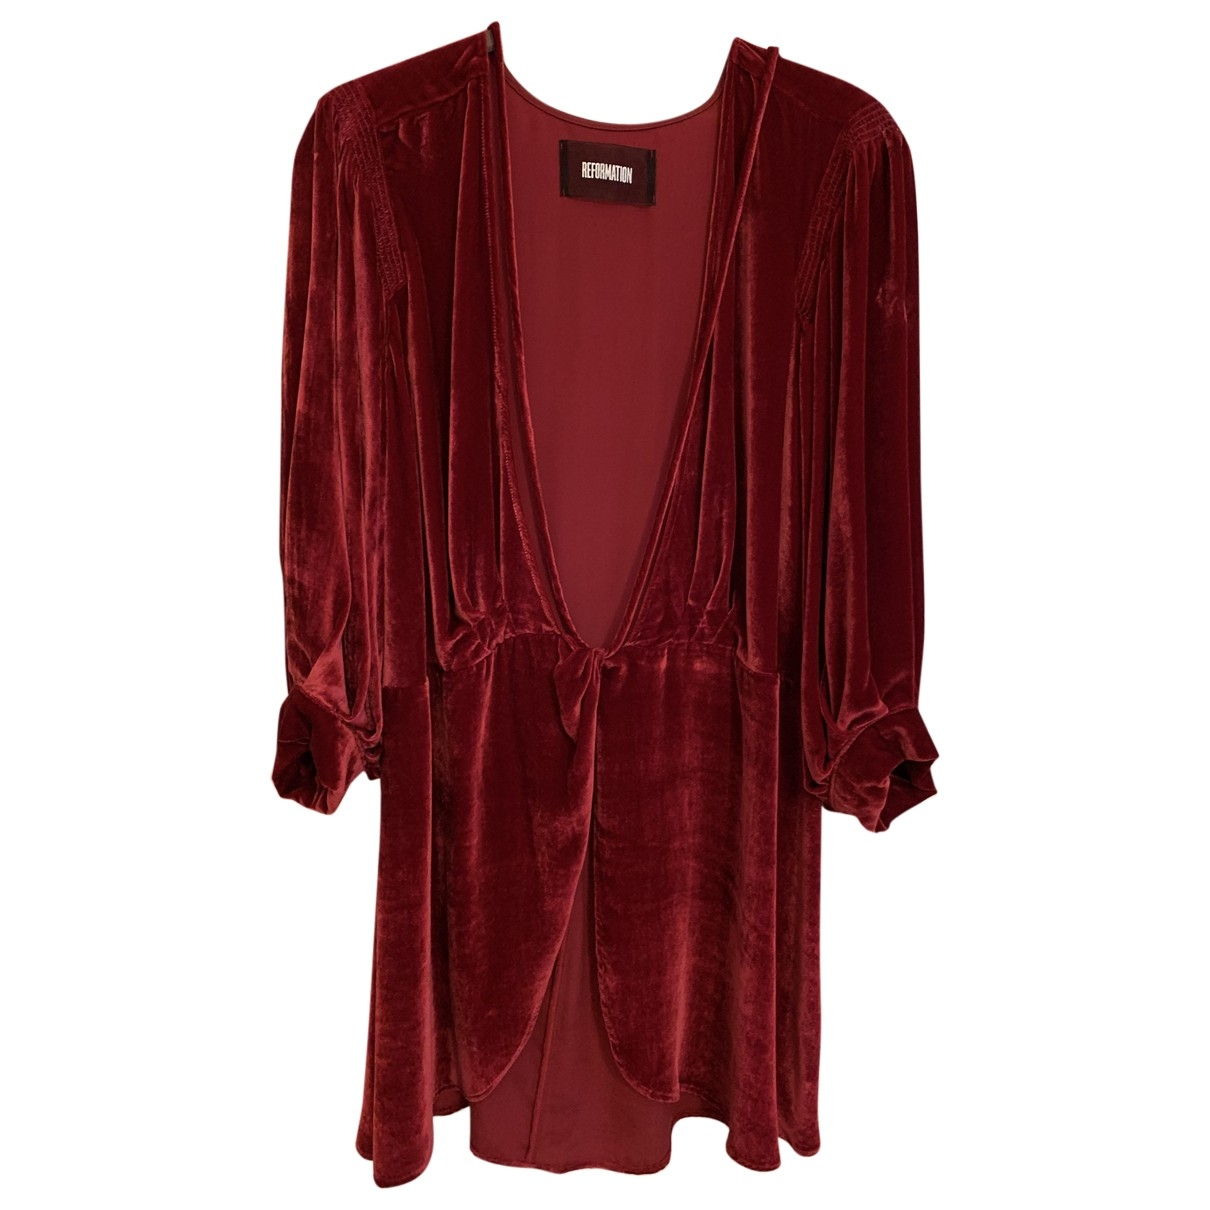 Reformation \N Red dress for Women S International